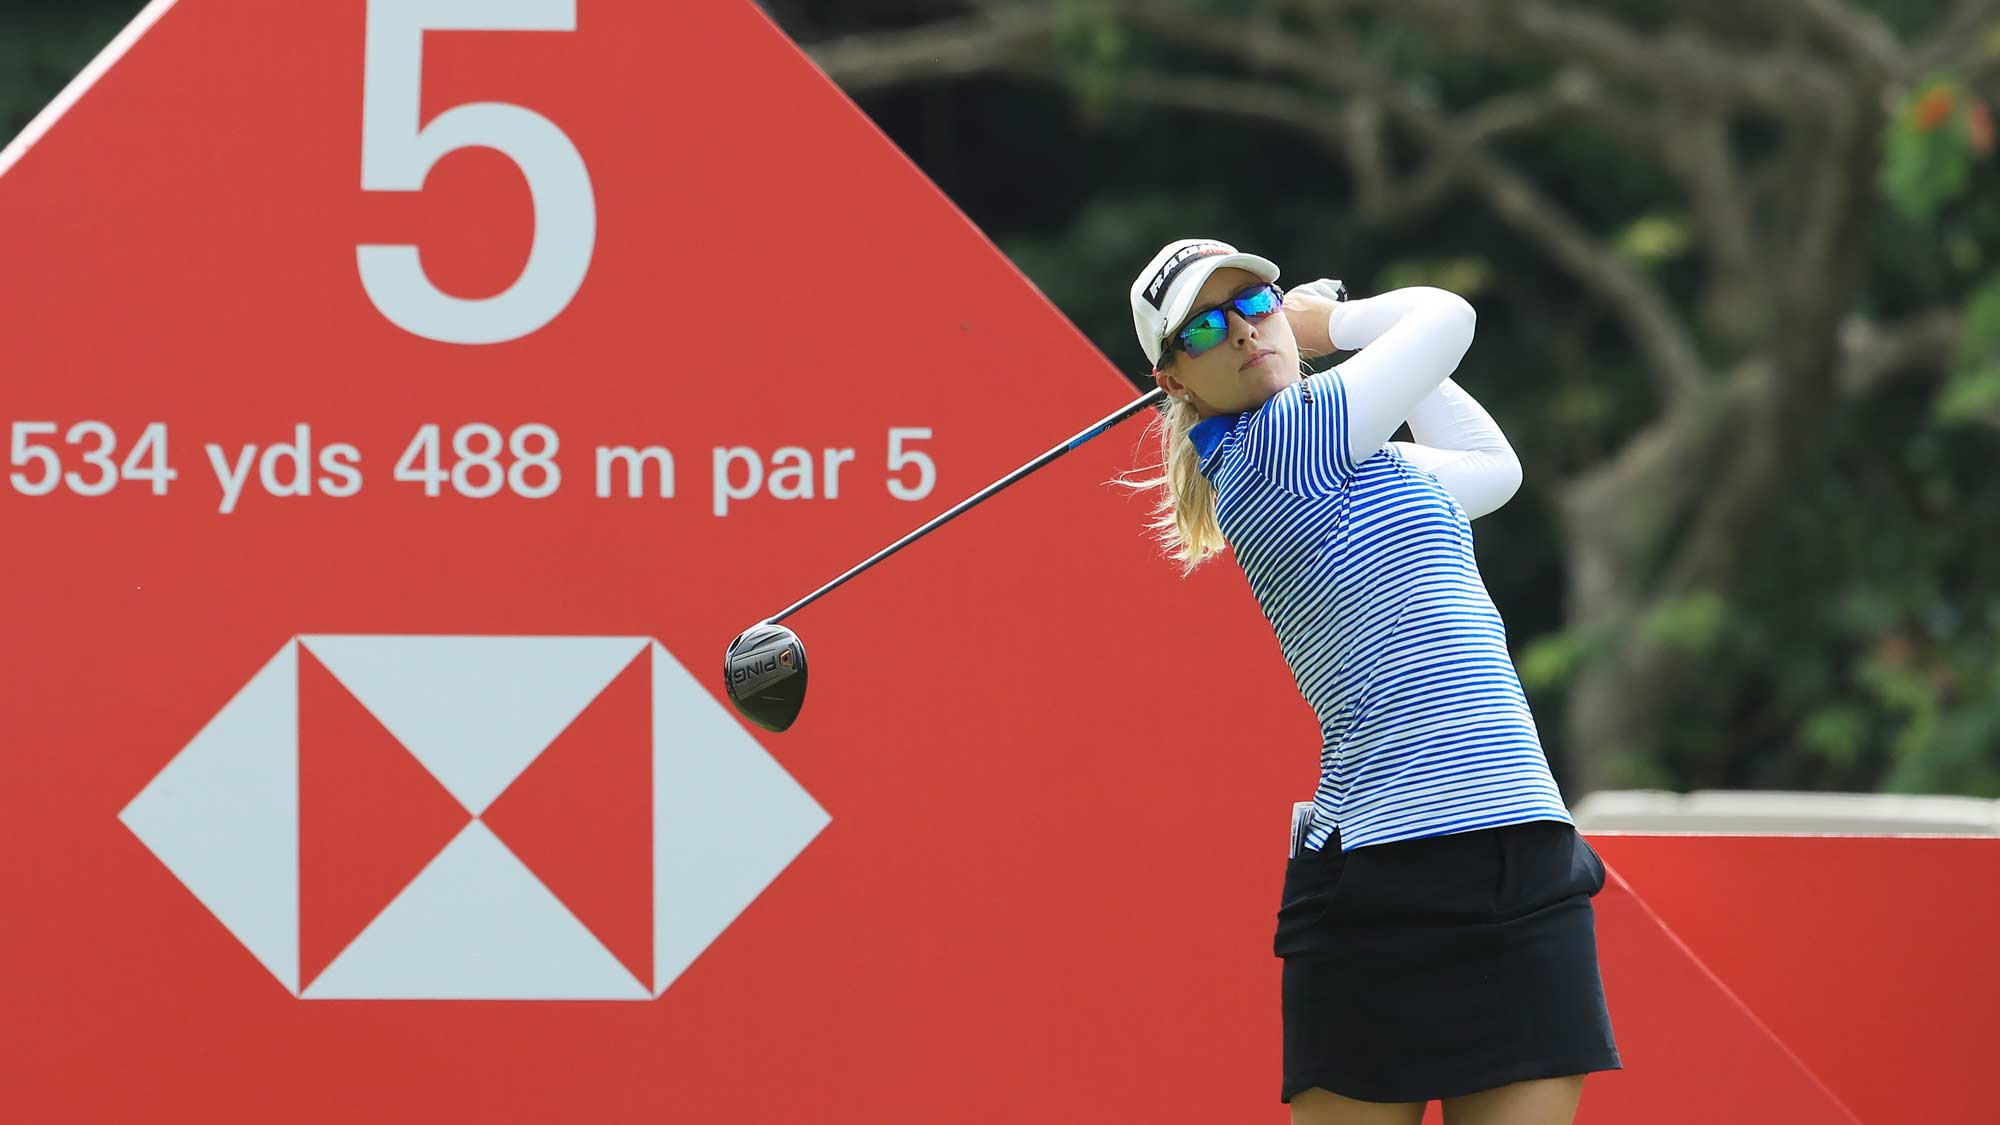 Jodi Ewart Shadoff of England plays her shot from the fifth tee during the second round of the HSBC Women's World Championship at Sentosa Golf Club on March 01, 2019 in Singapore.